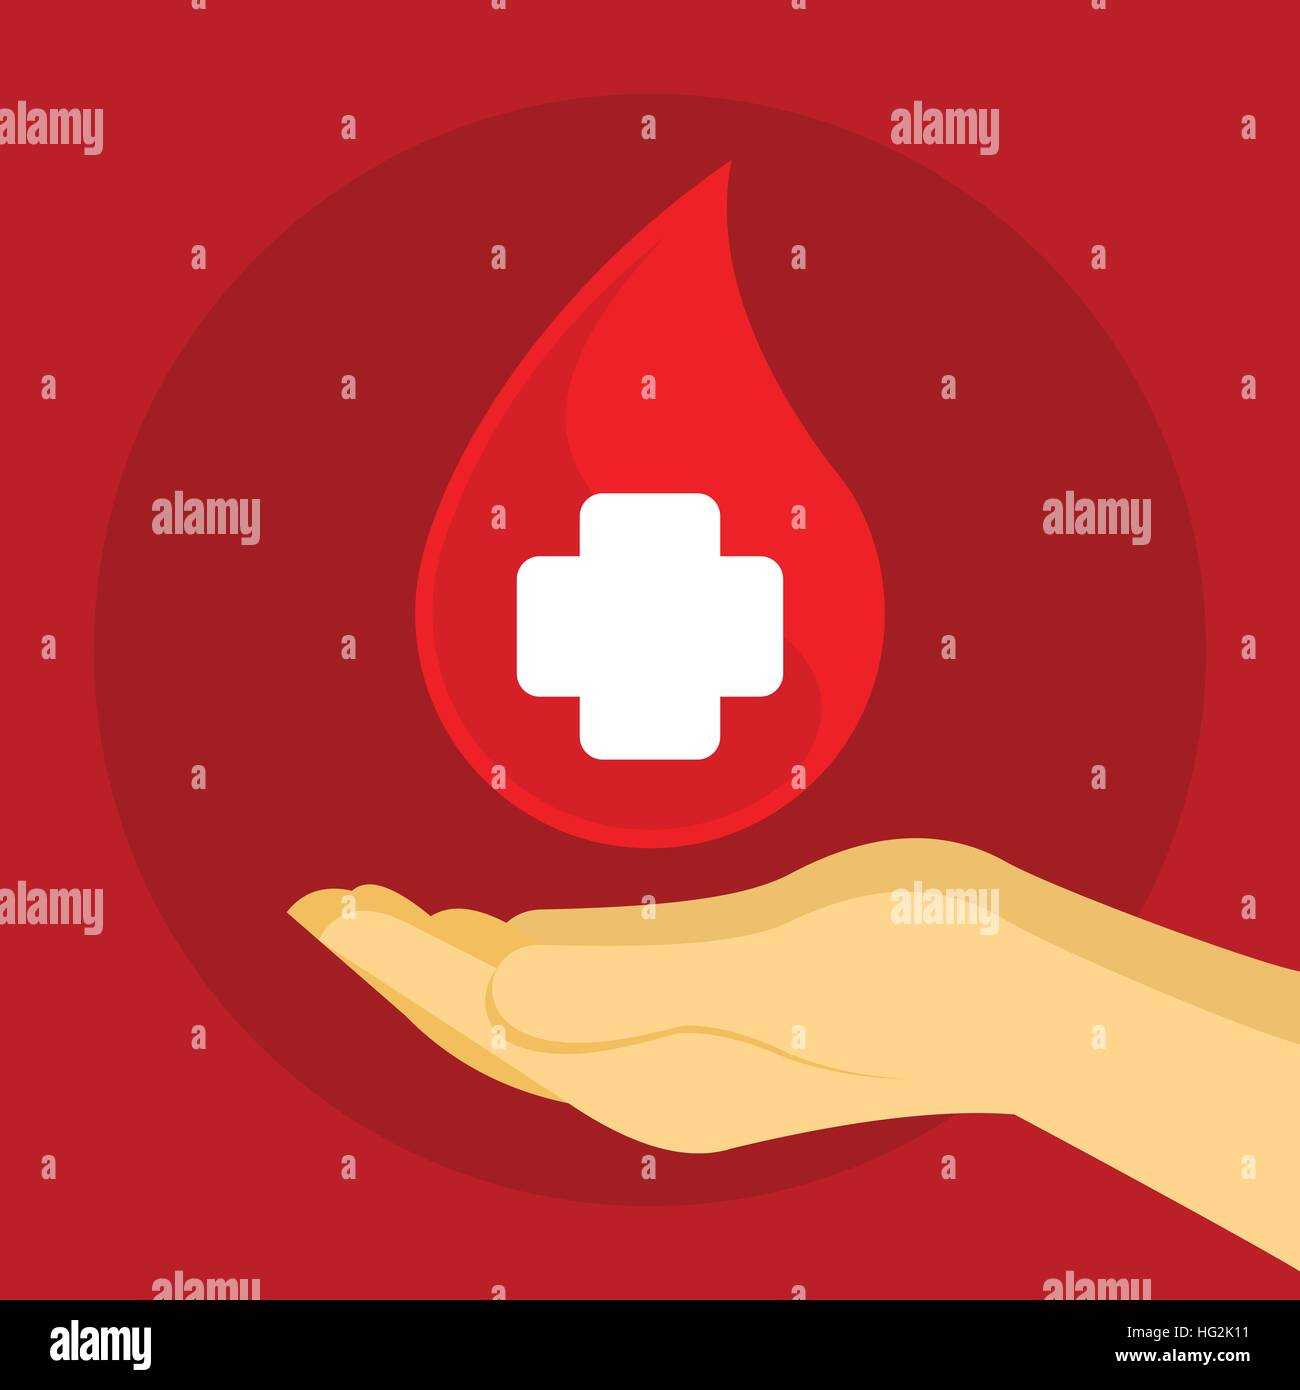 donate blood saves lives - Stock Image